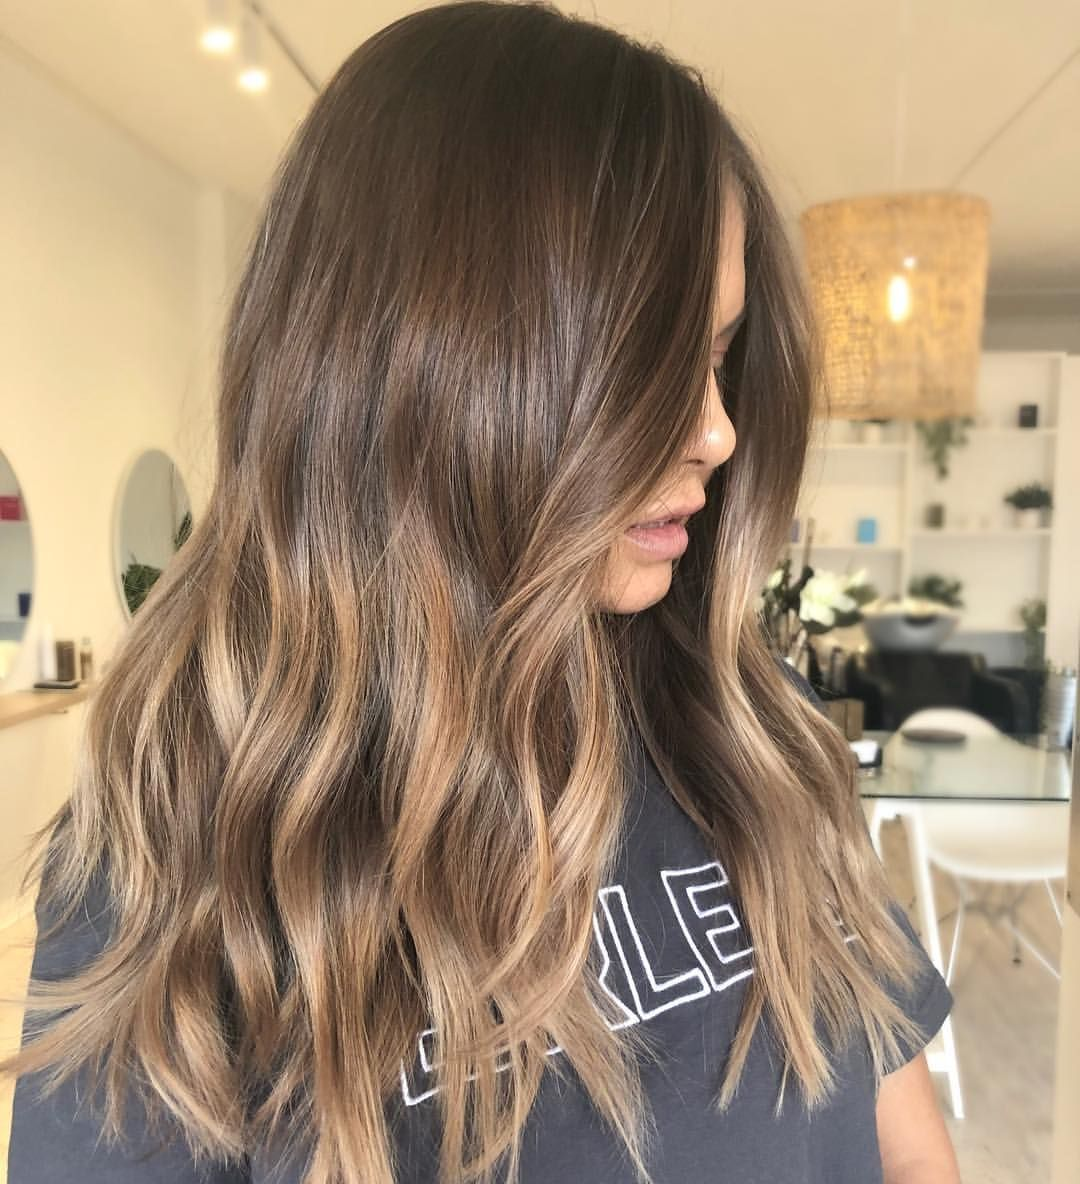 Adding Low Lights To A Faded Out Blonde To Create Dimension We Also Toned Down Karly Brown Hair With Blonde Highlights Brunette Hair Color Brown Hair Balayage